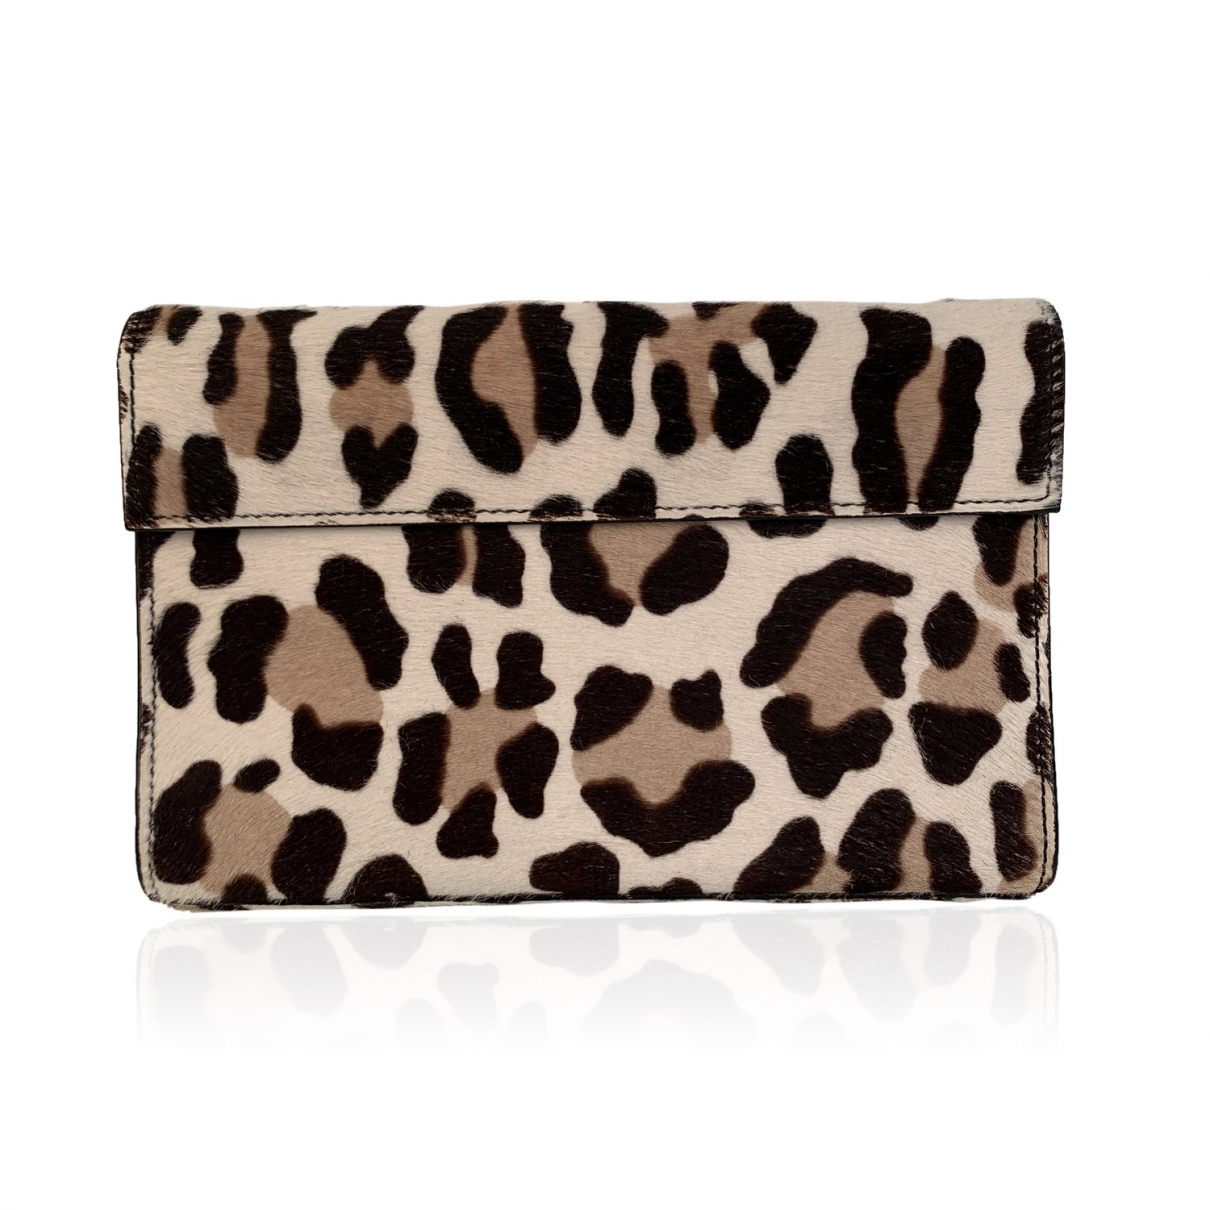 Alaia \N Clutch in  Beige Kalbsleder in Pony-Optik